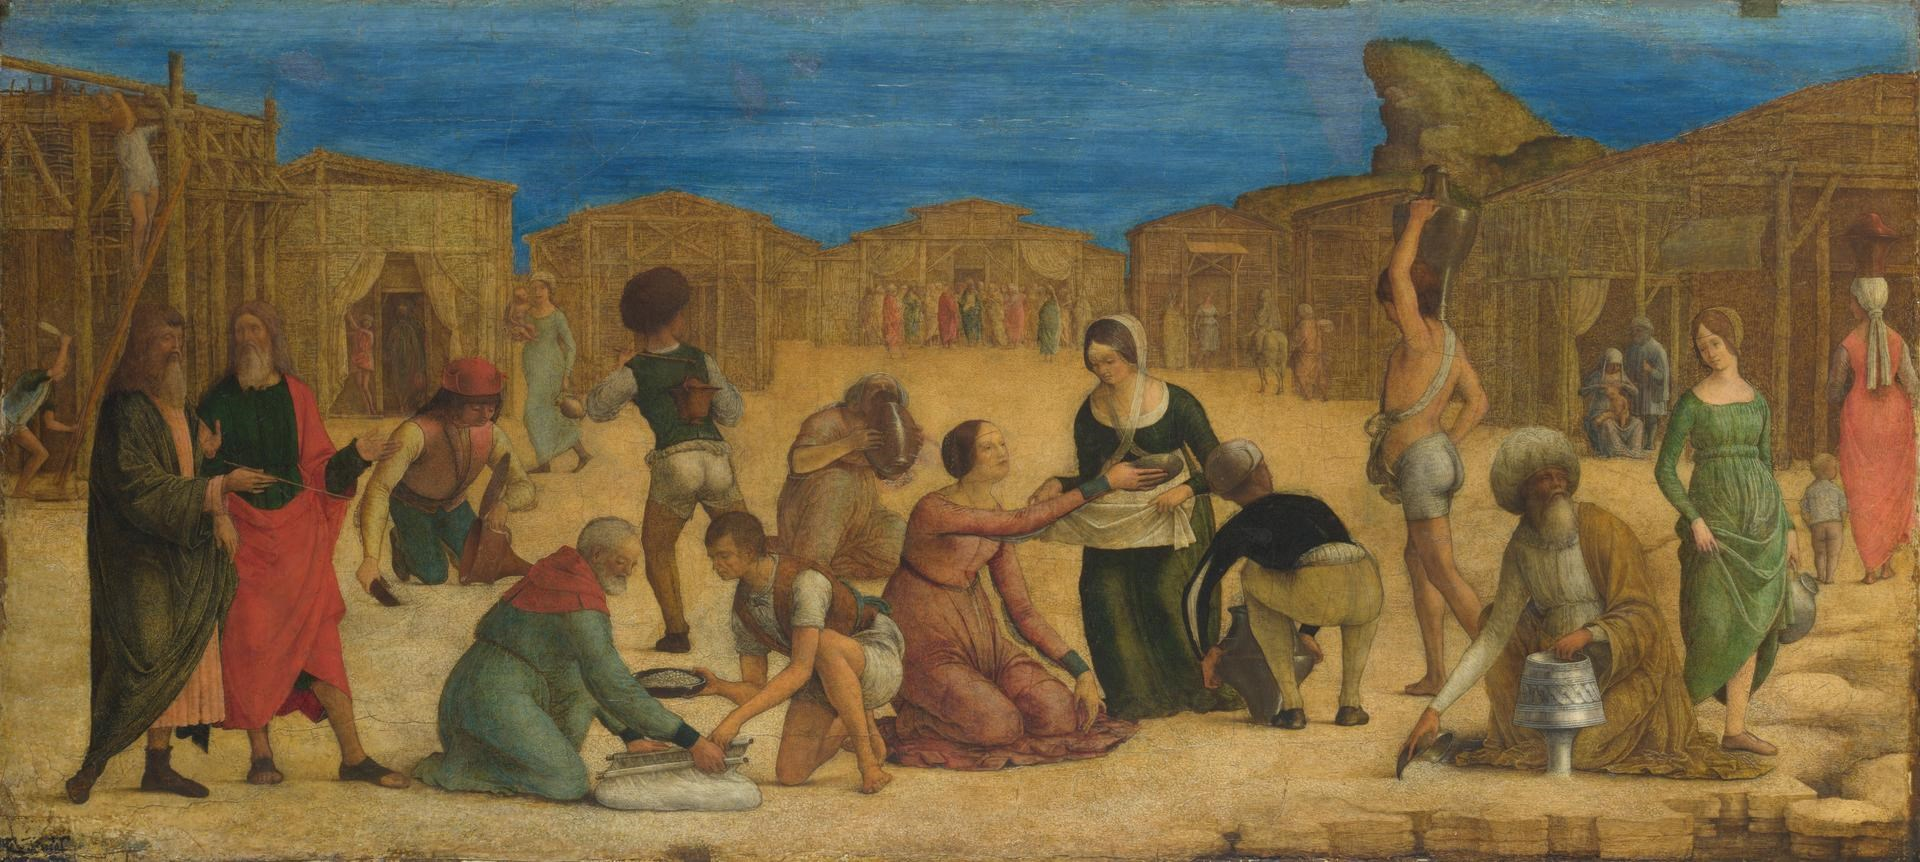 The Israelites gathering Manna by Ercole de' Roberti